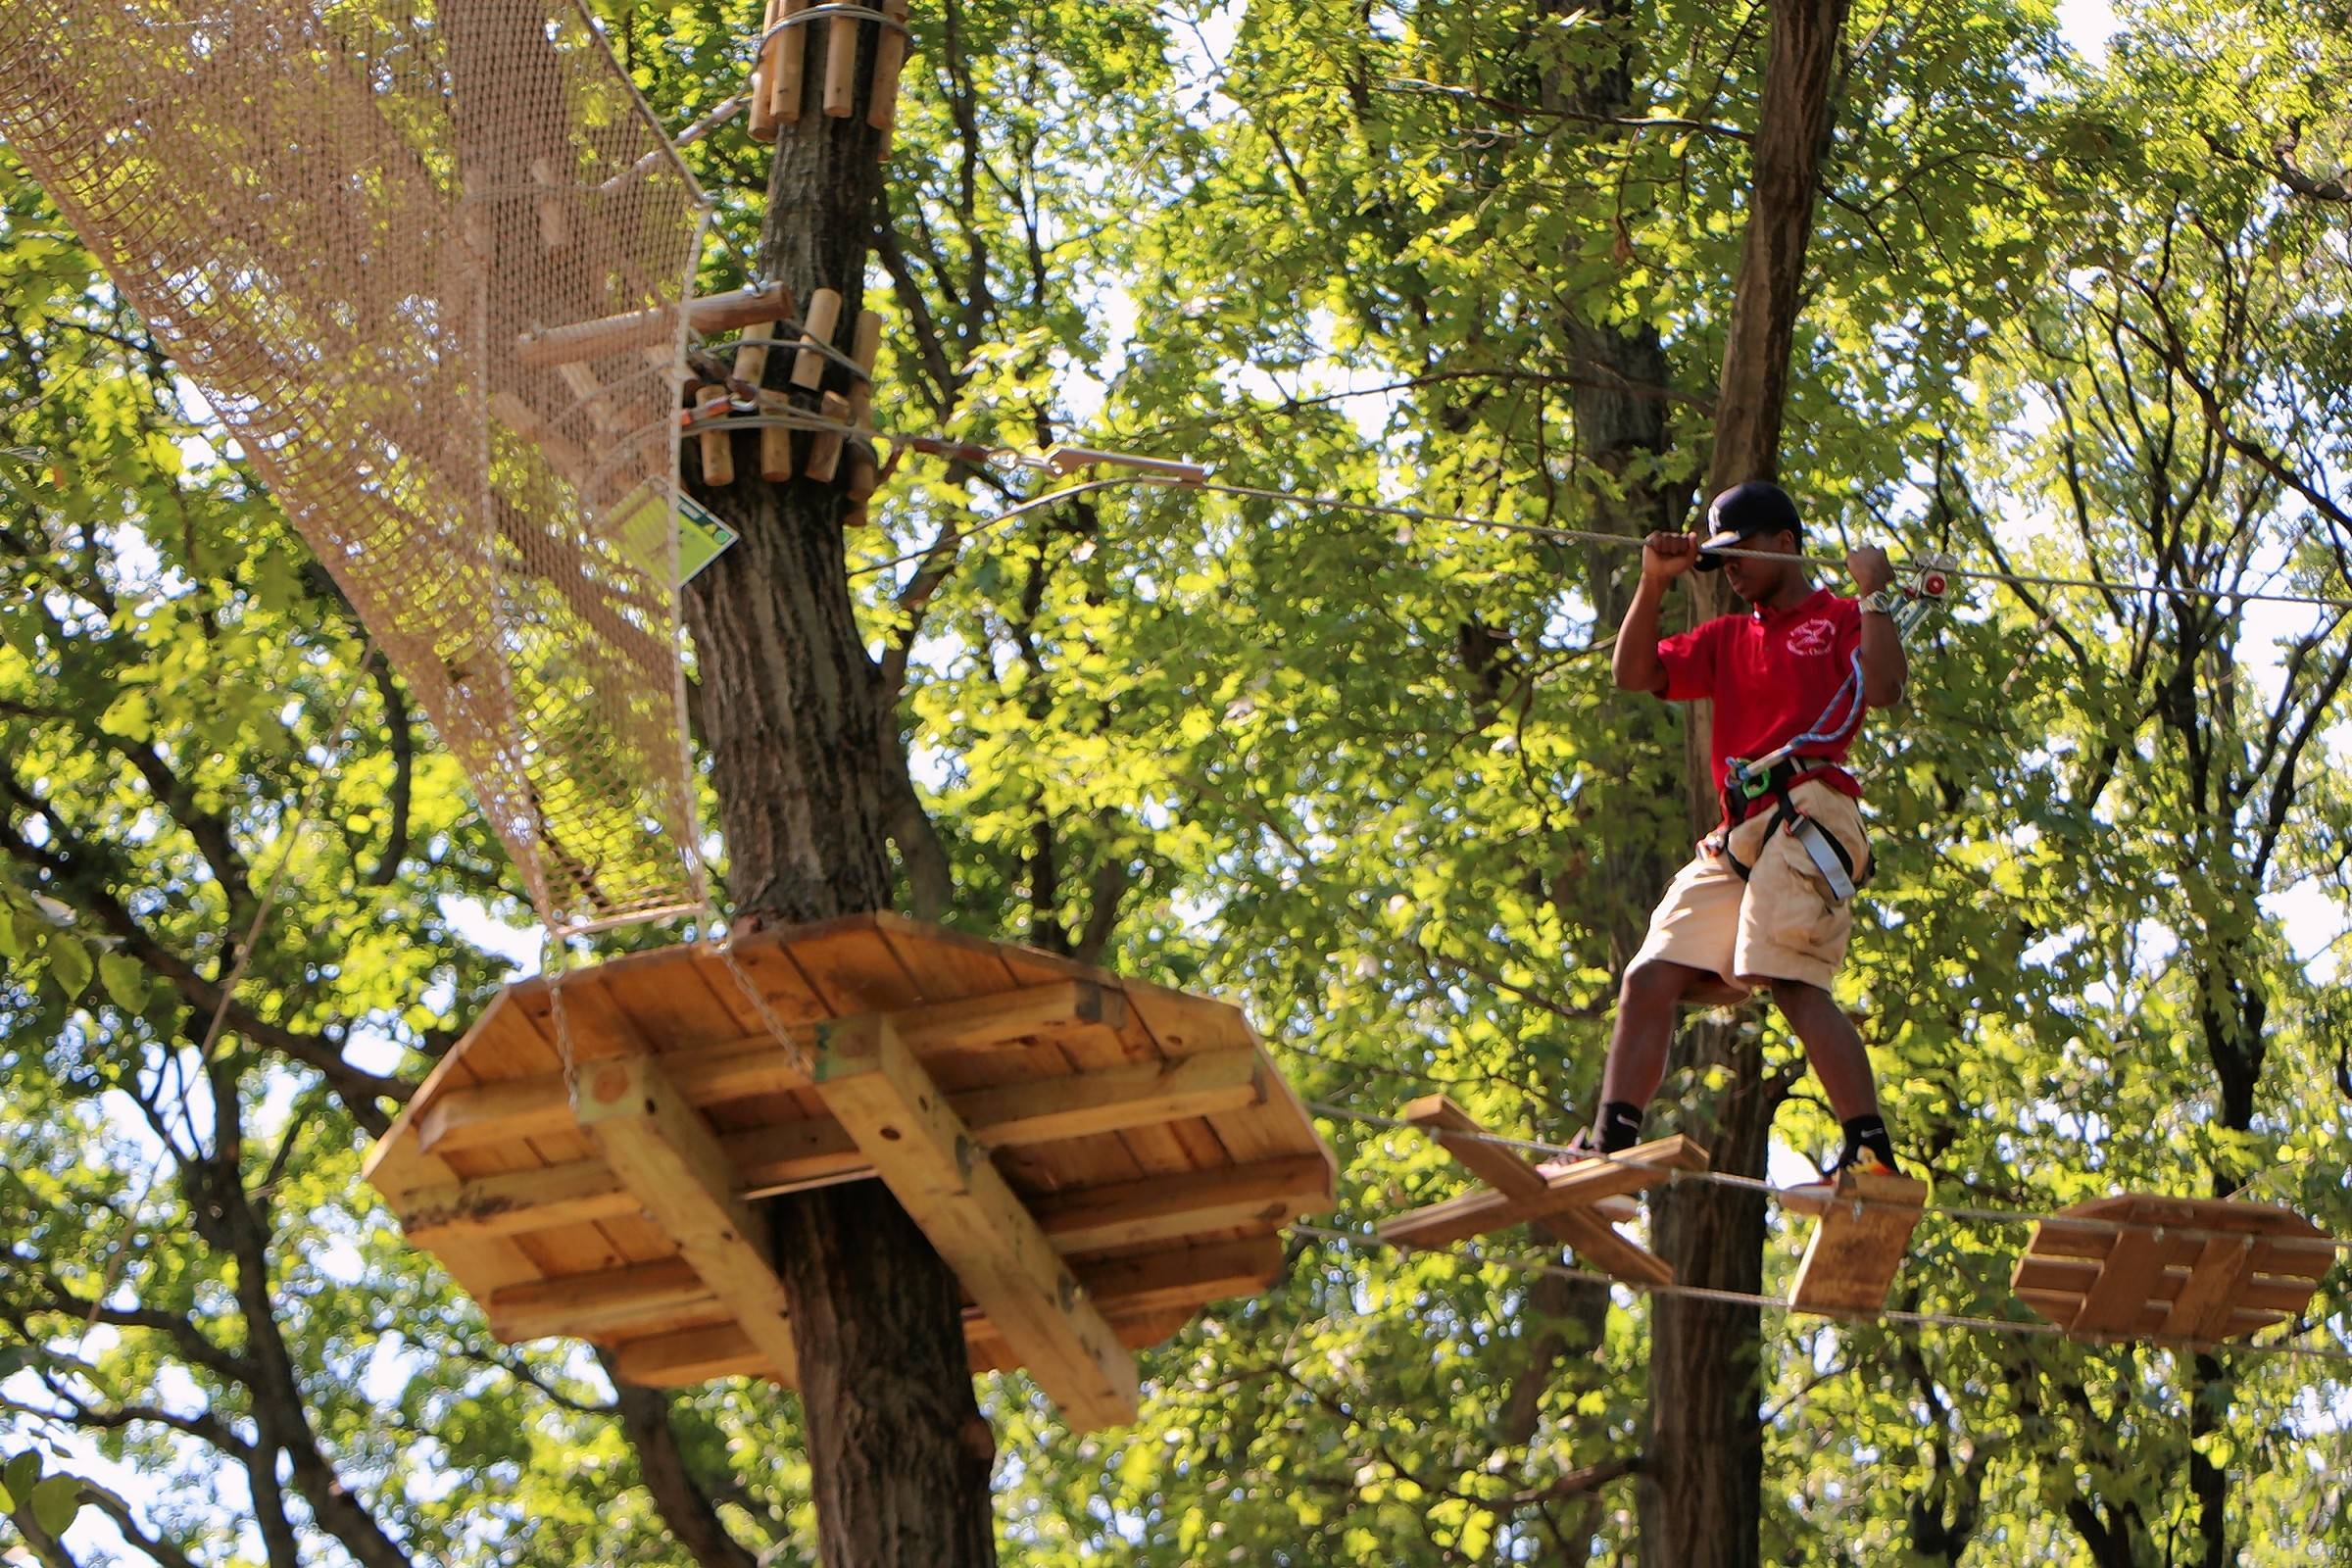 Kinnard Hughes of Chicago demonstrates the obstacle course at the Go Ape treetop adventure area in Bemis Woods South in Western Springs during a press preview Friday.